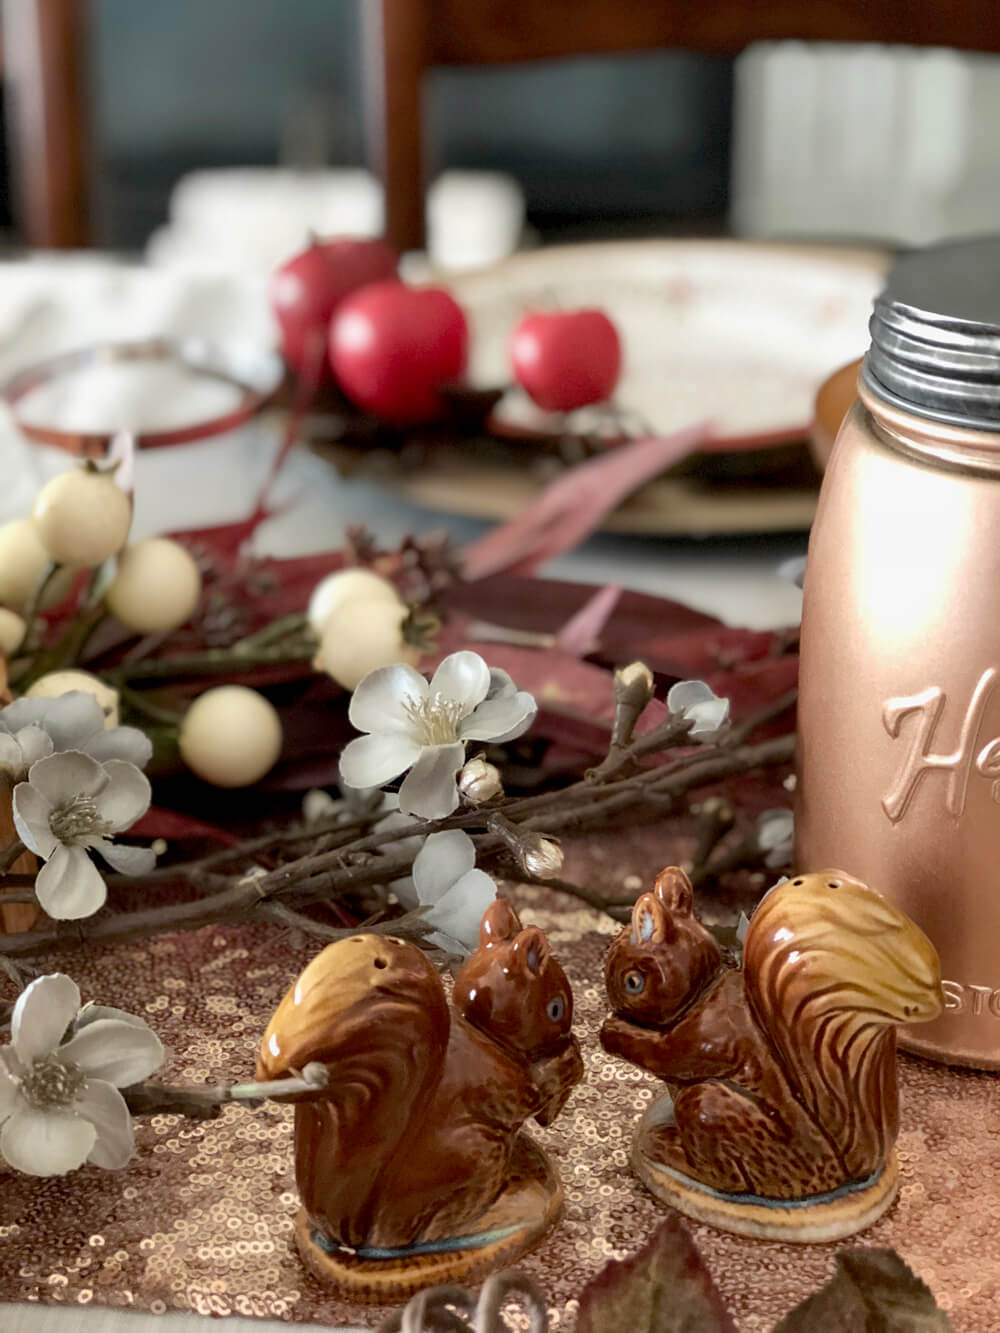 Squirrel salt and pepper shakers for girls night harvest party ideas